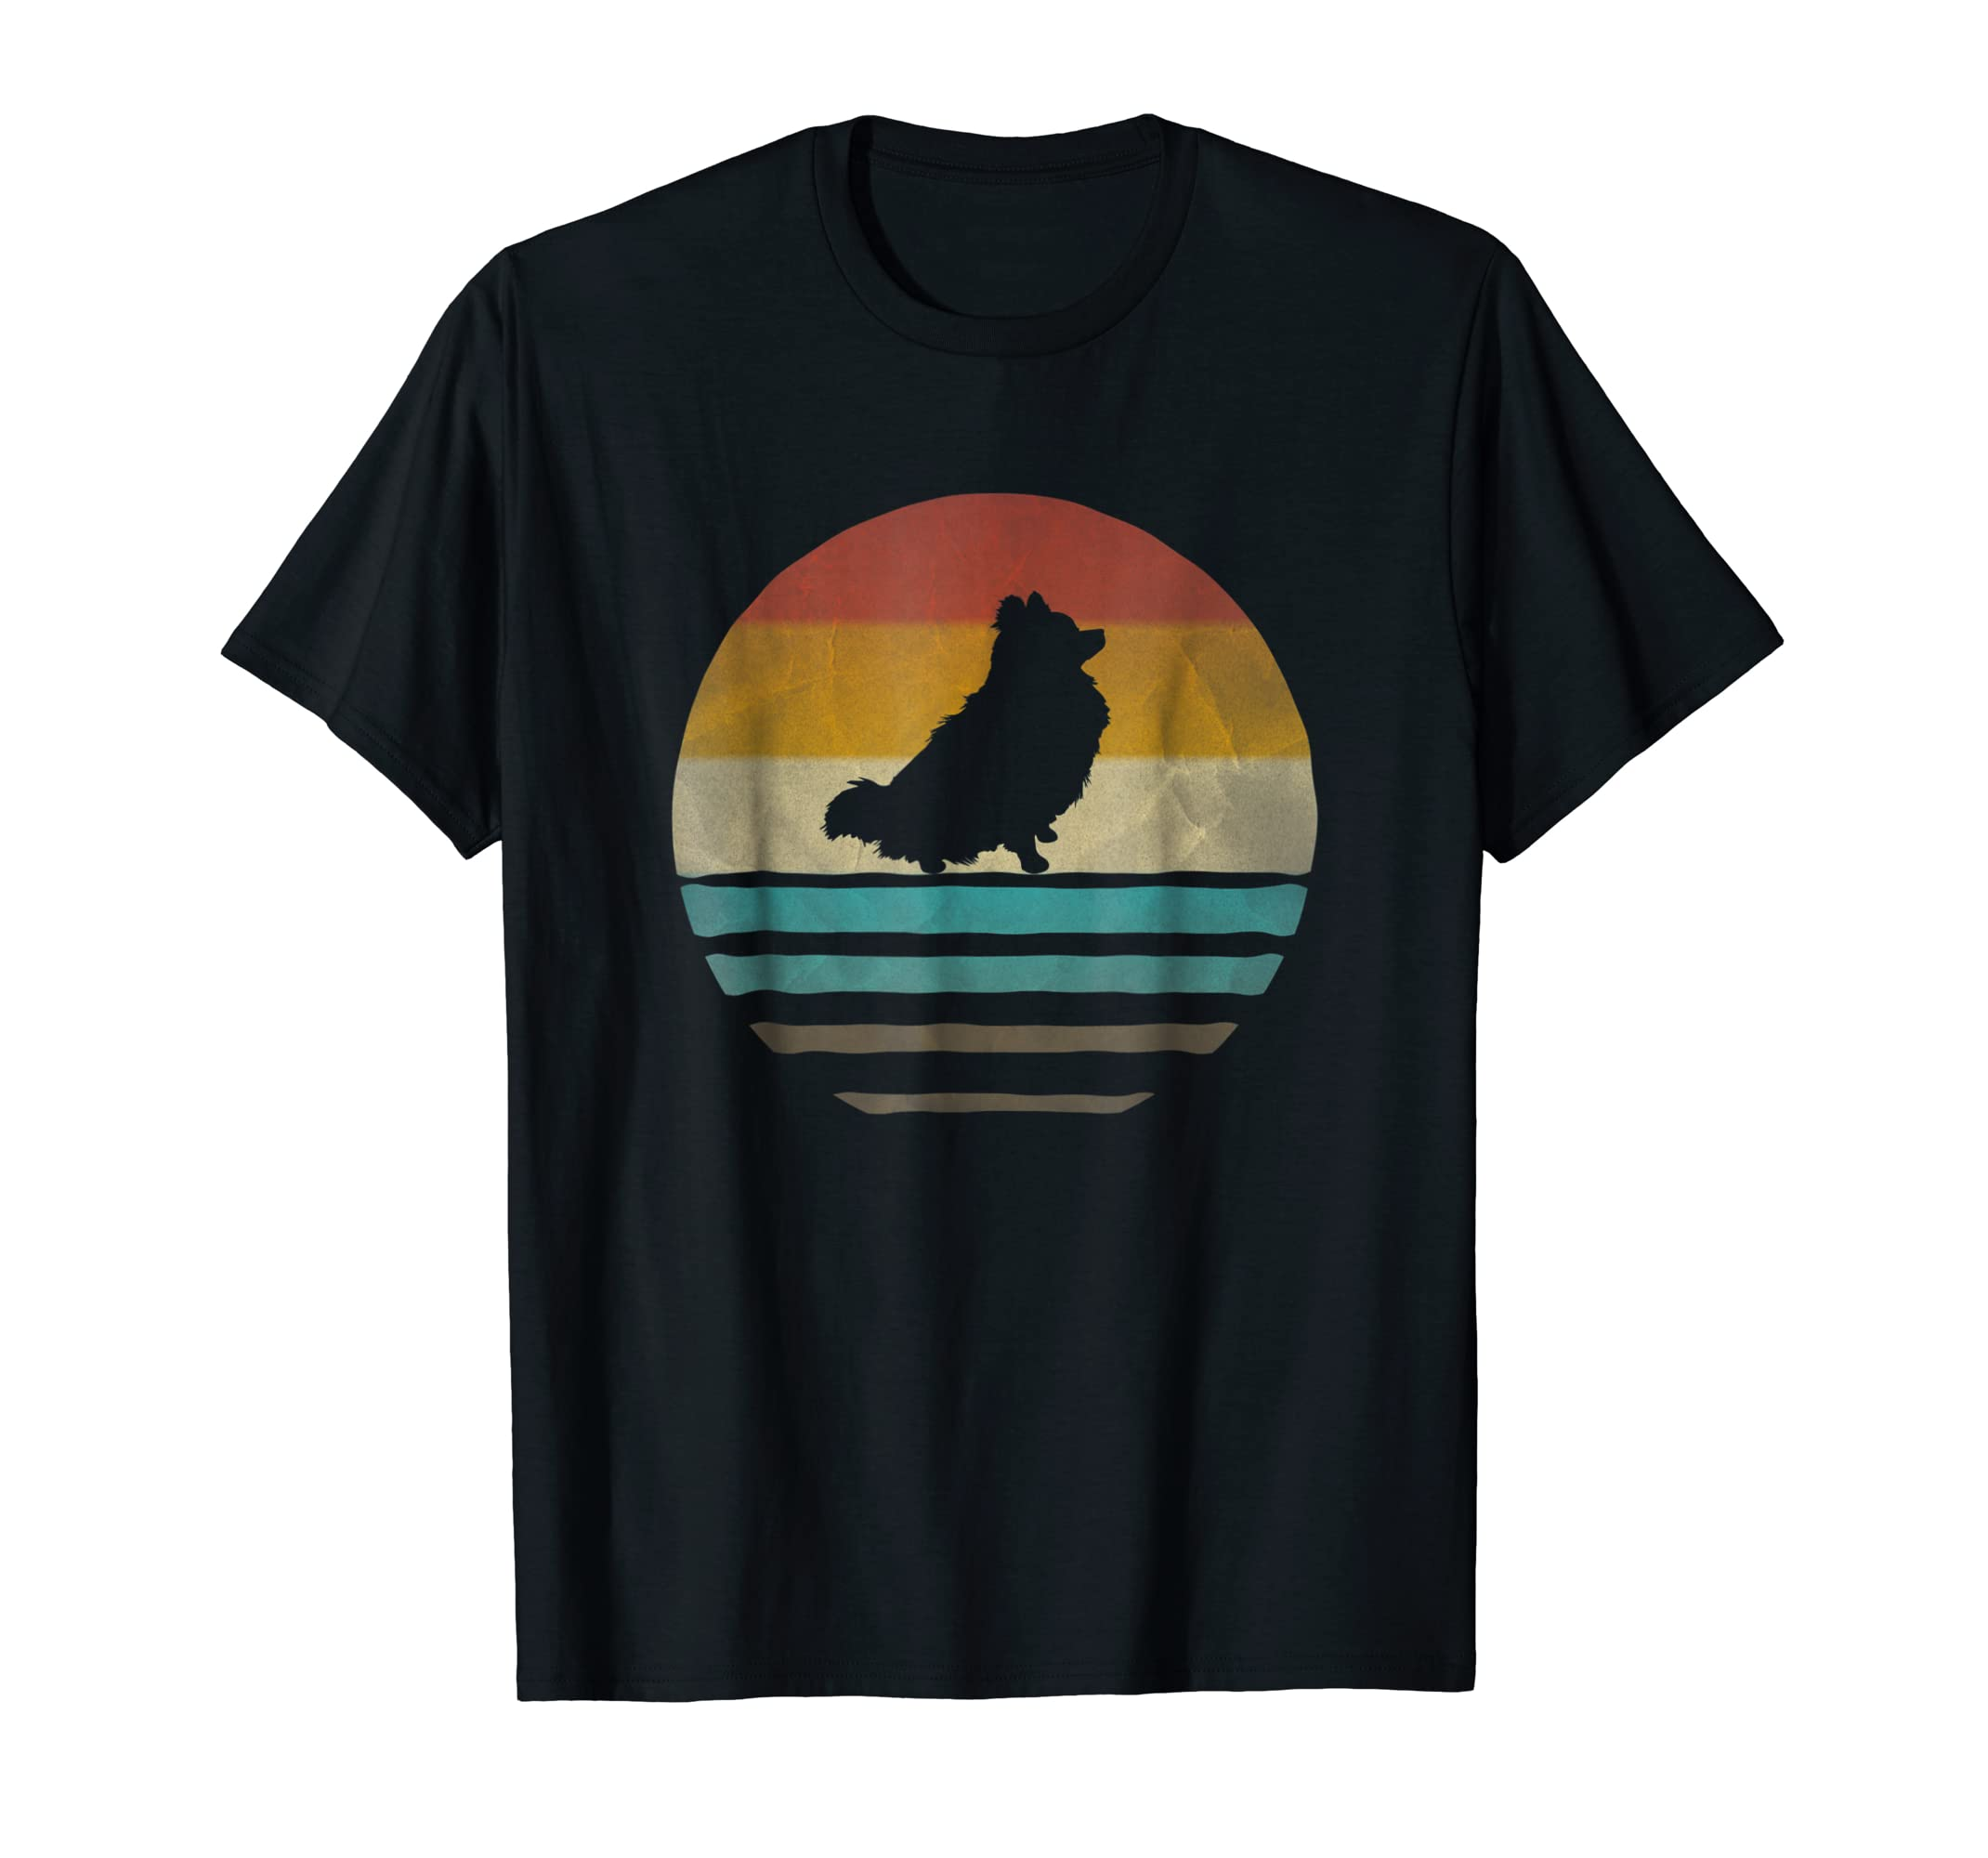 Pomeranian Dog Shirt Retro Vintage 70s Silhouette Distressed-Men's T-Shirt-Black